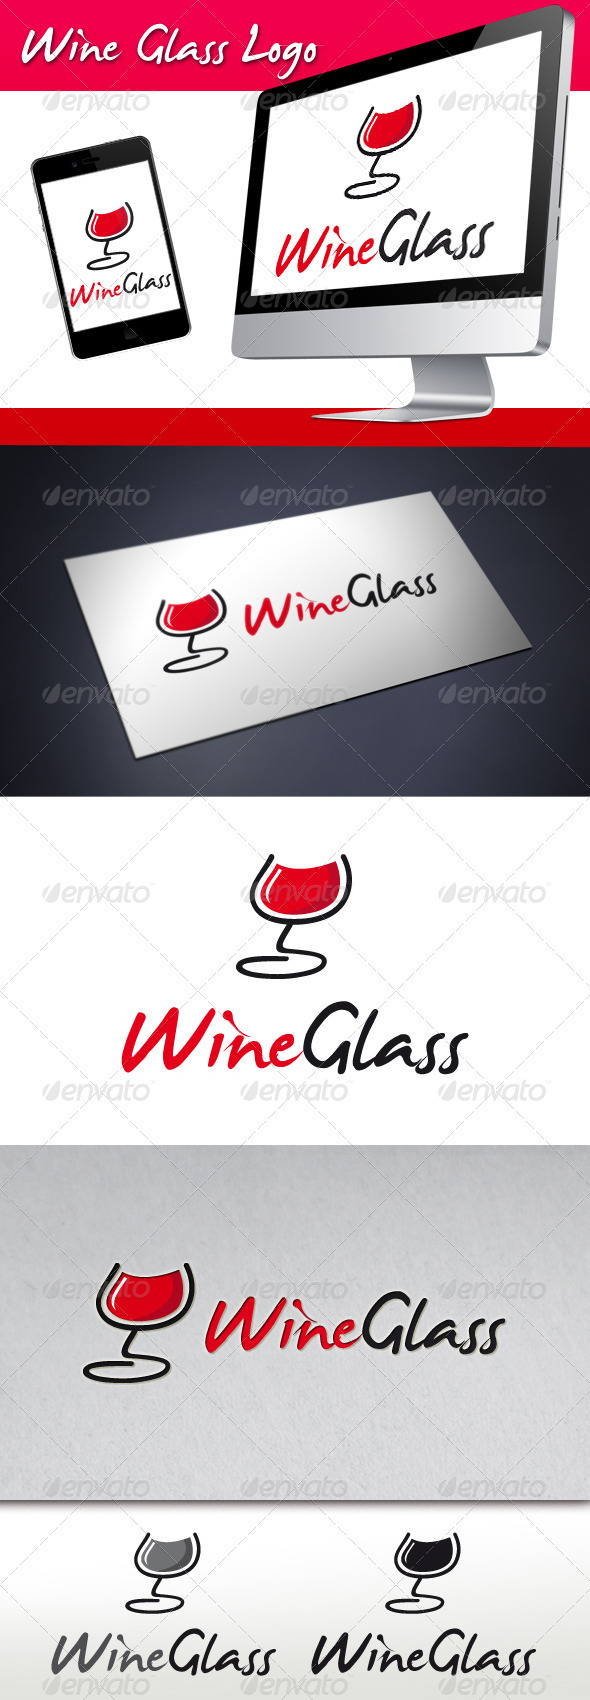 GraphicRiver Wine Glass Logo 3494135